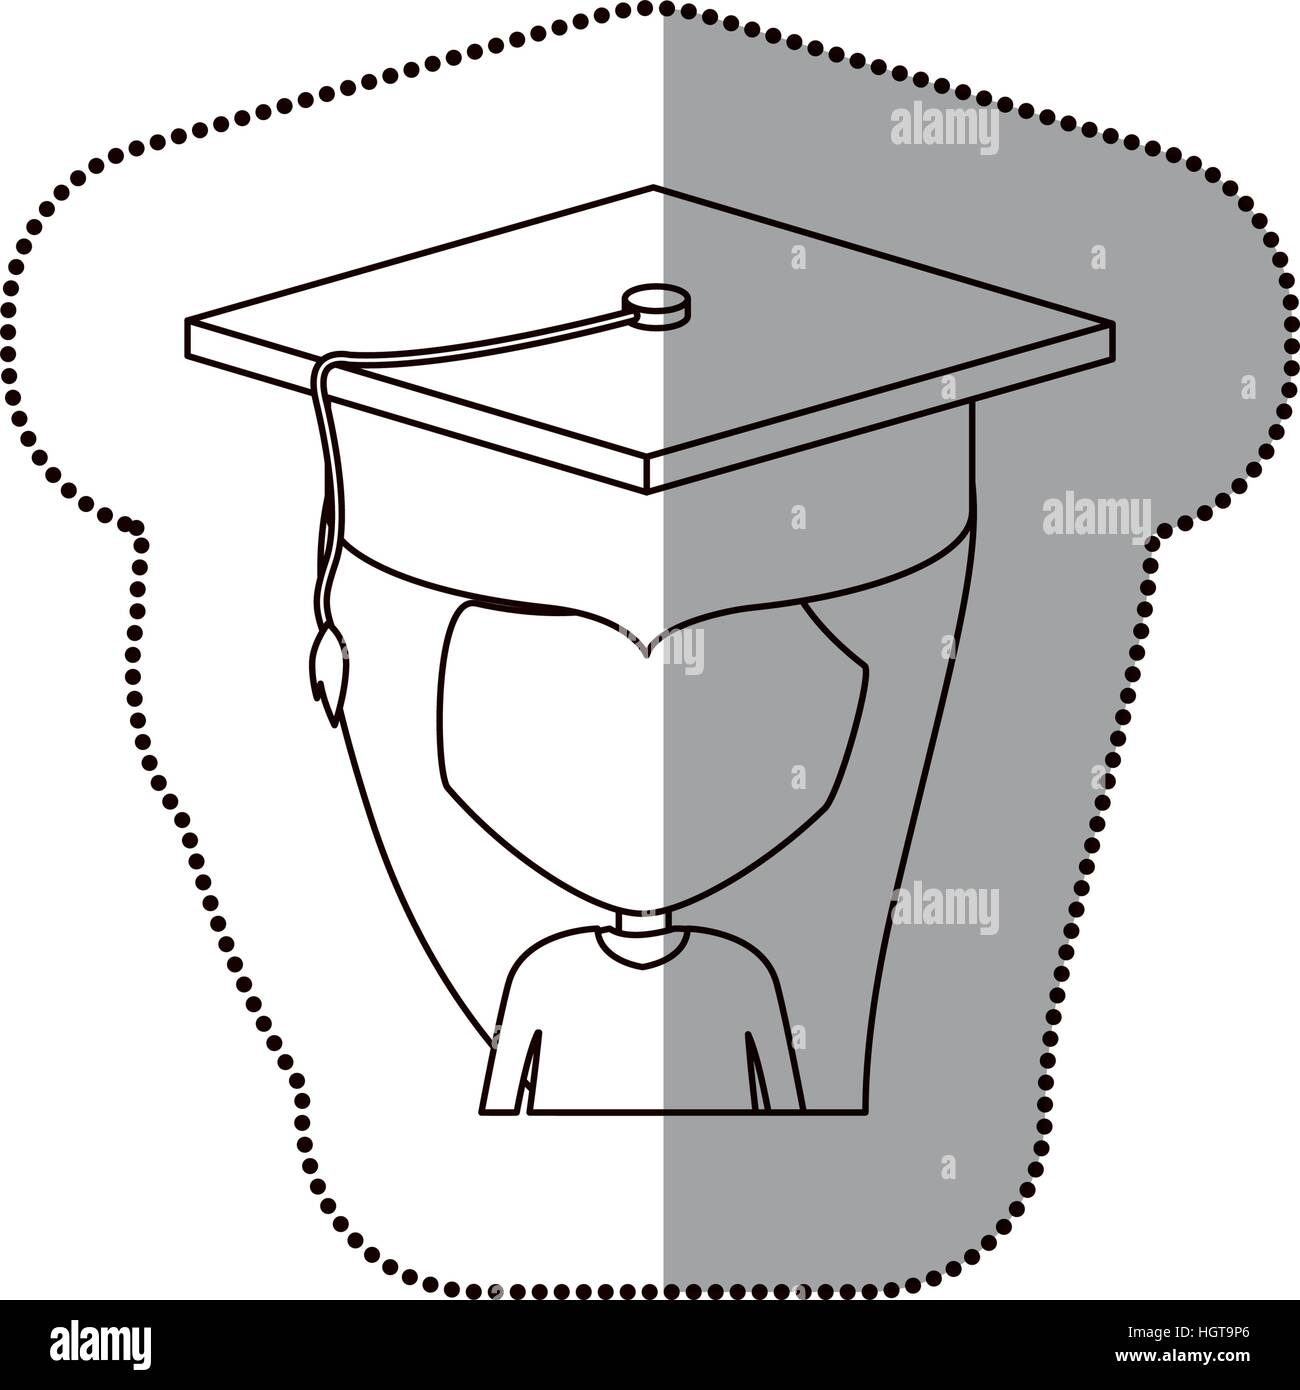 Boy Graduation Cap Design Stock Photos & Boy Graduation Cap Design ...